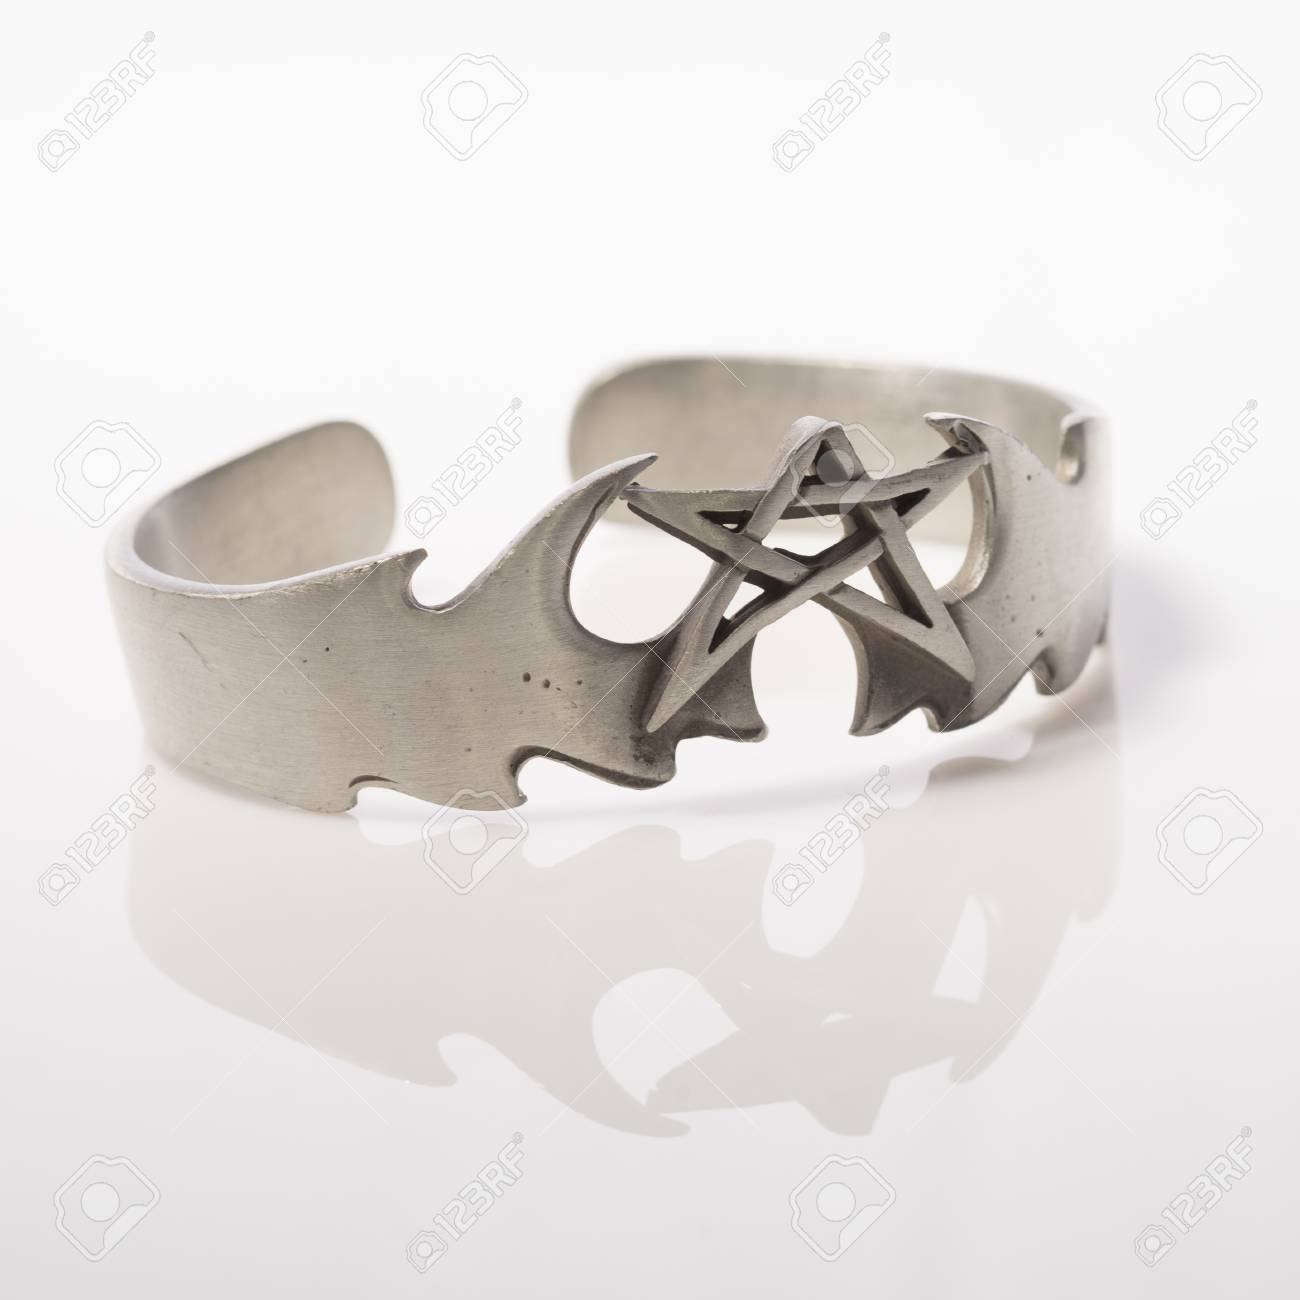 Star cuff style bracelet on white background with reflection Stock Photo - 26109948